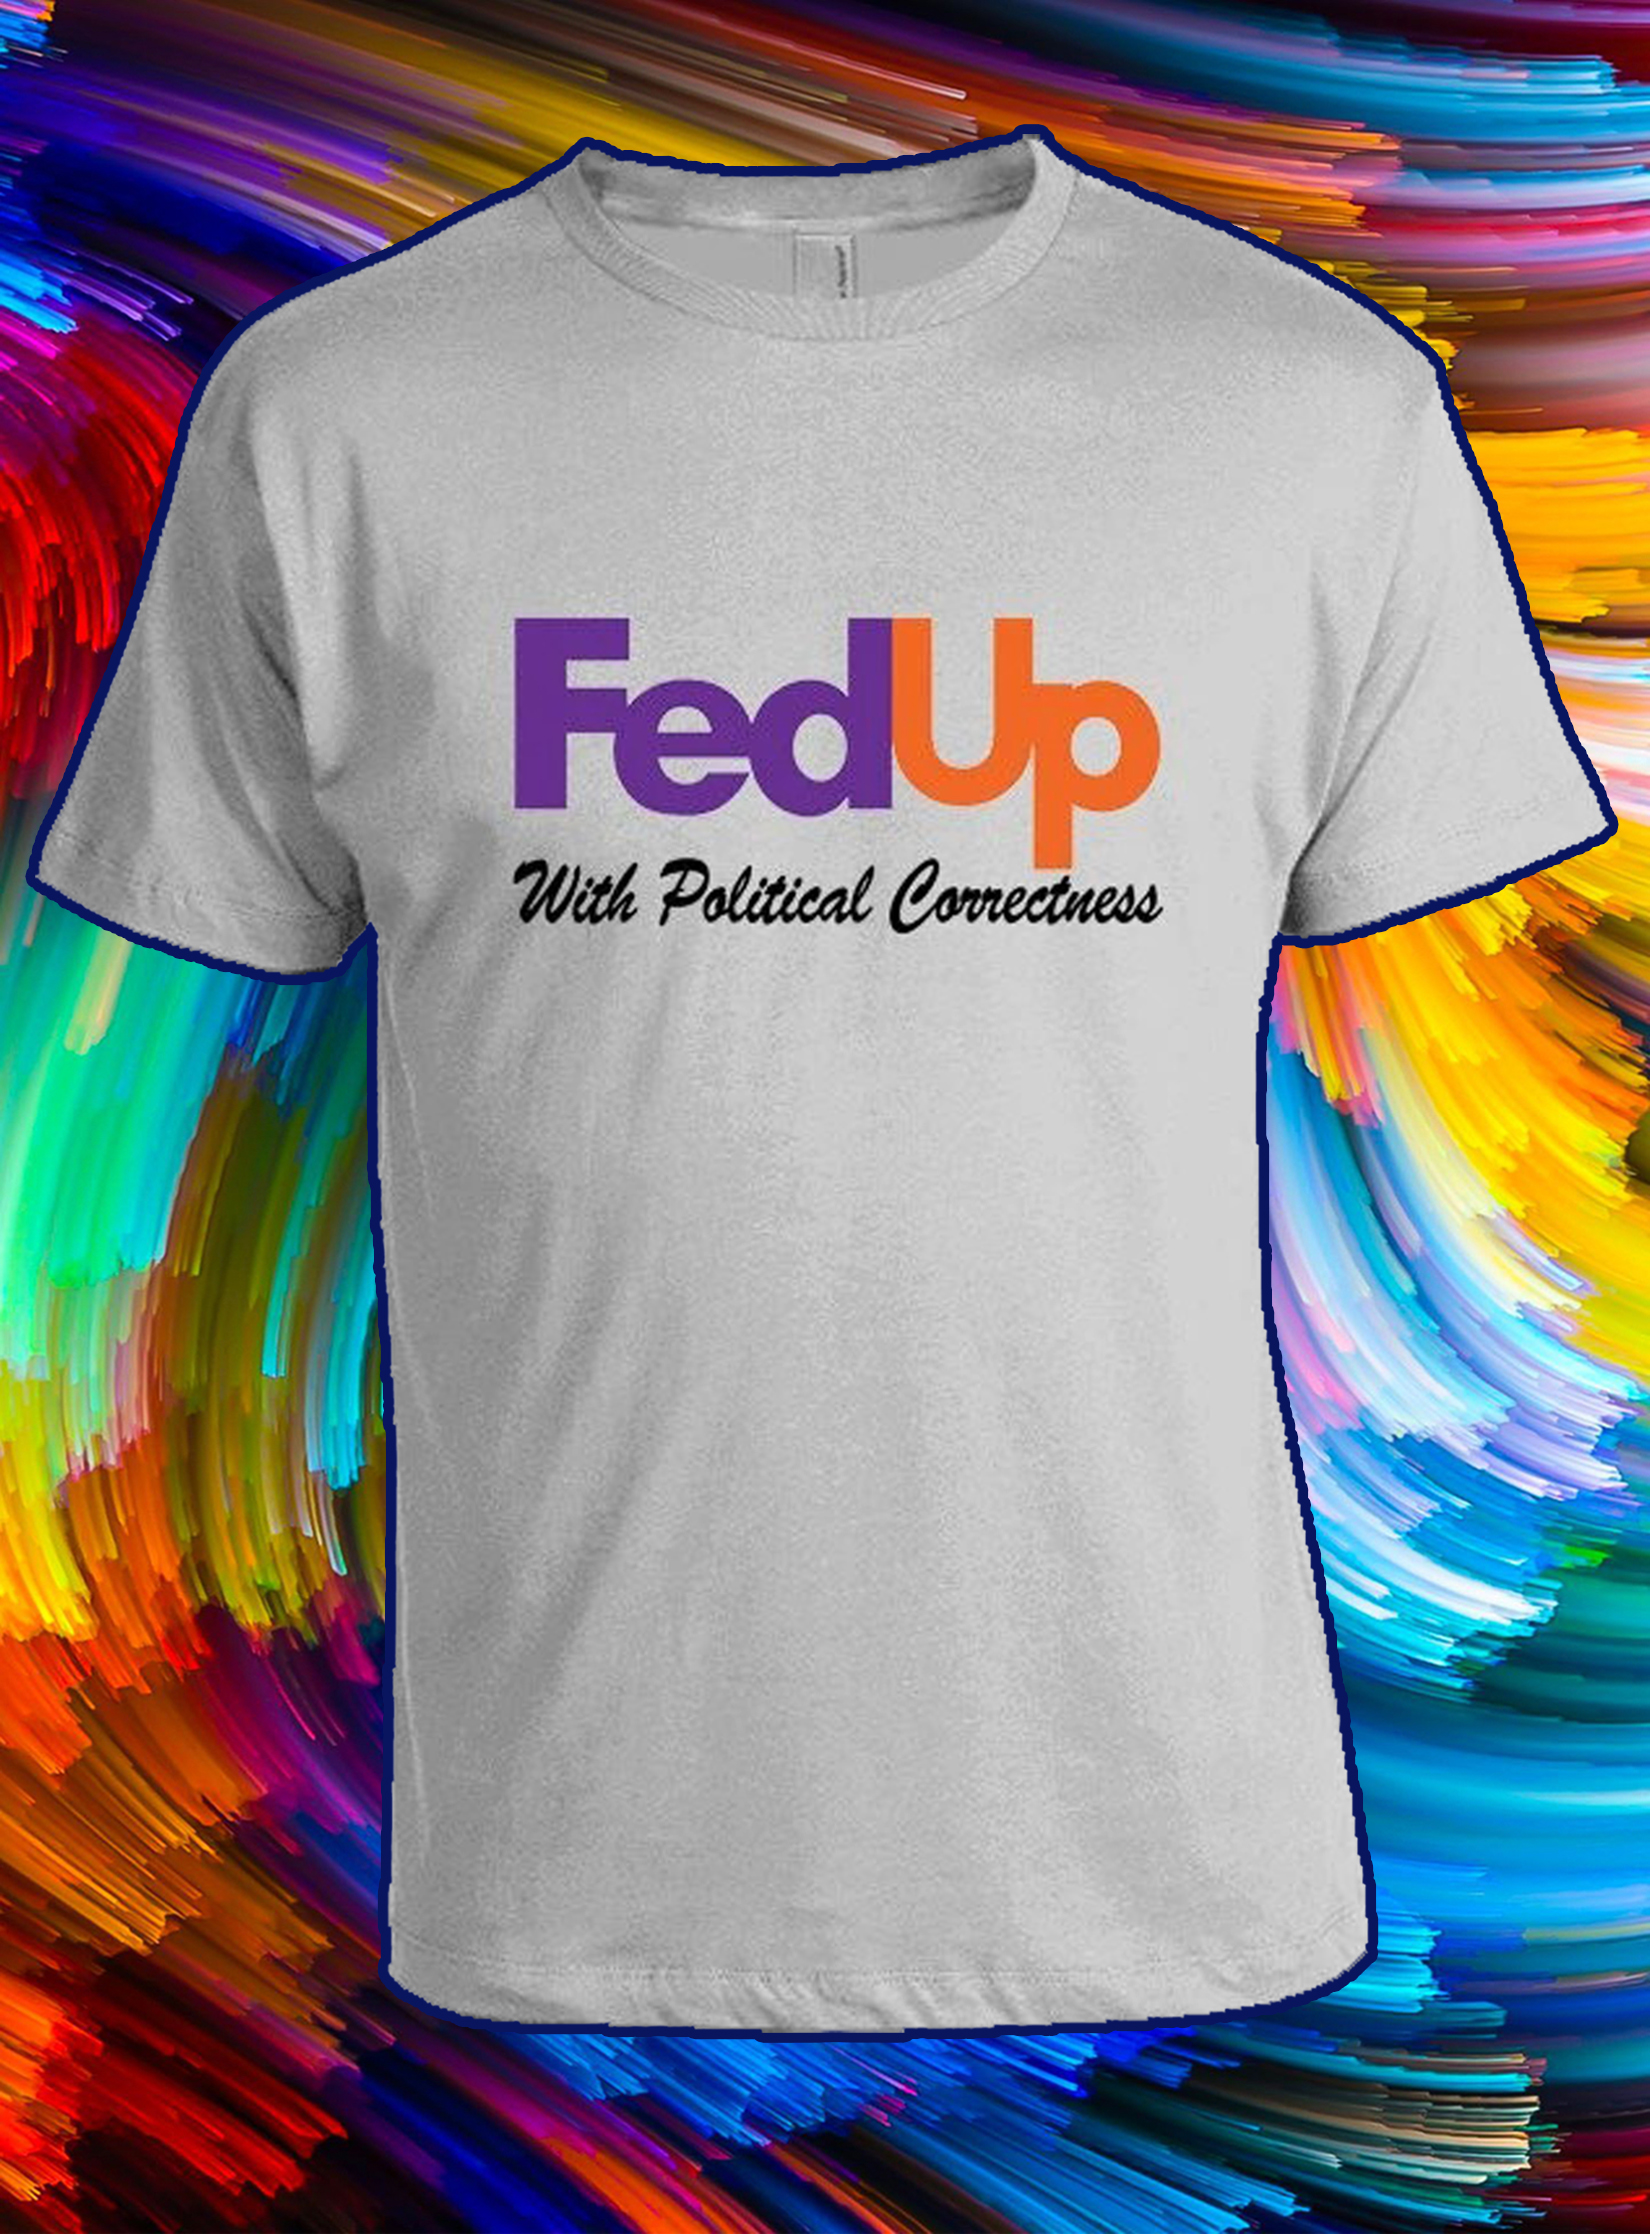 Fed up with political correctness shirt - L